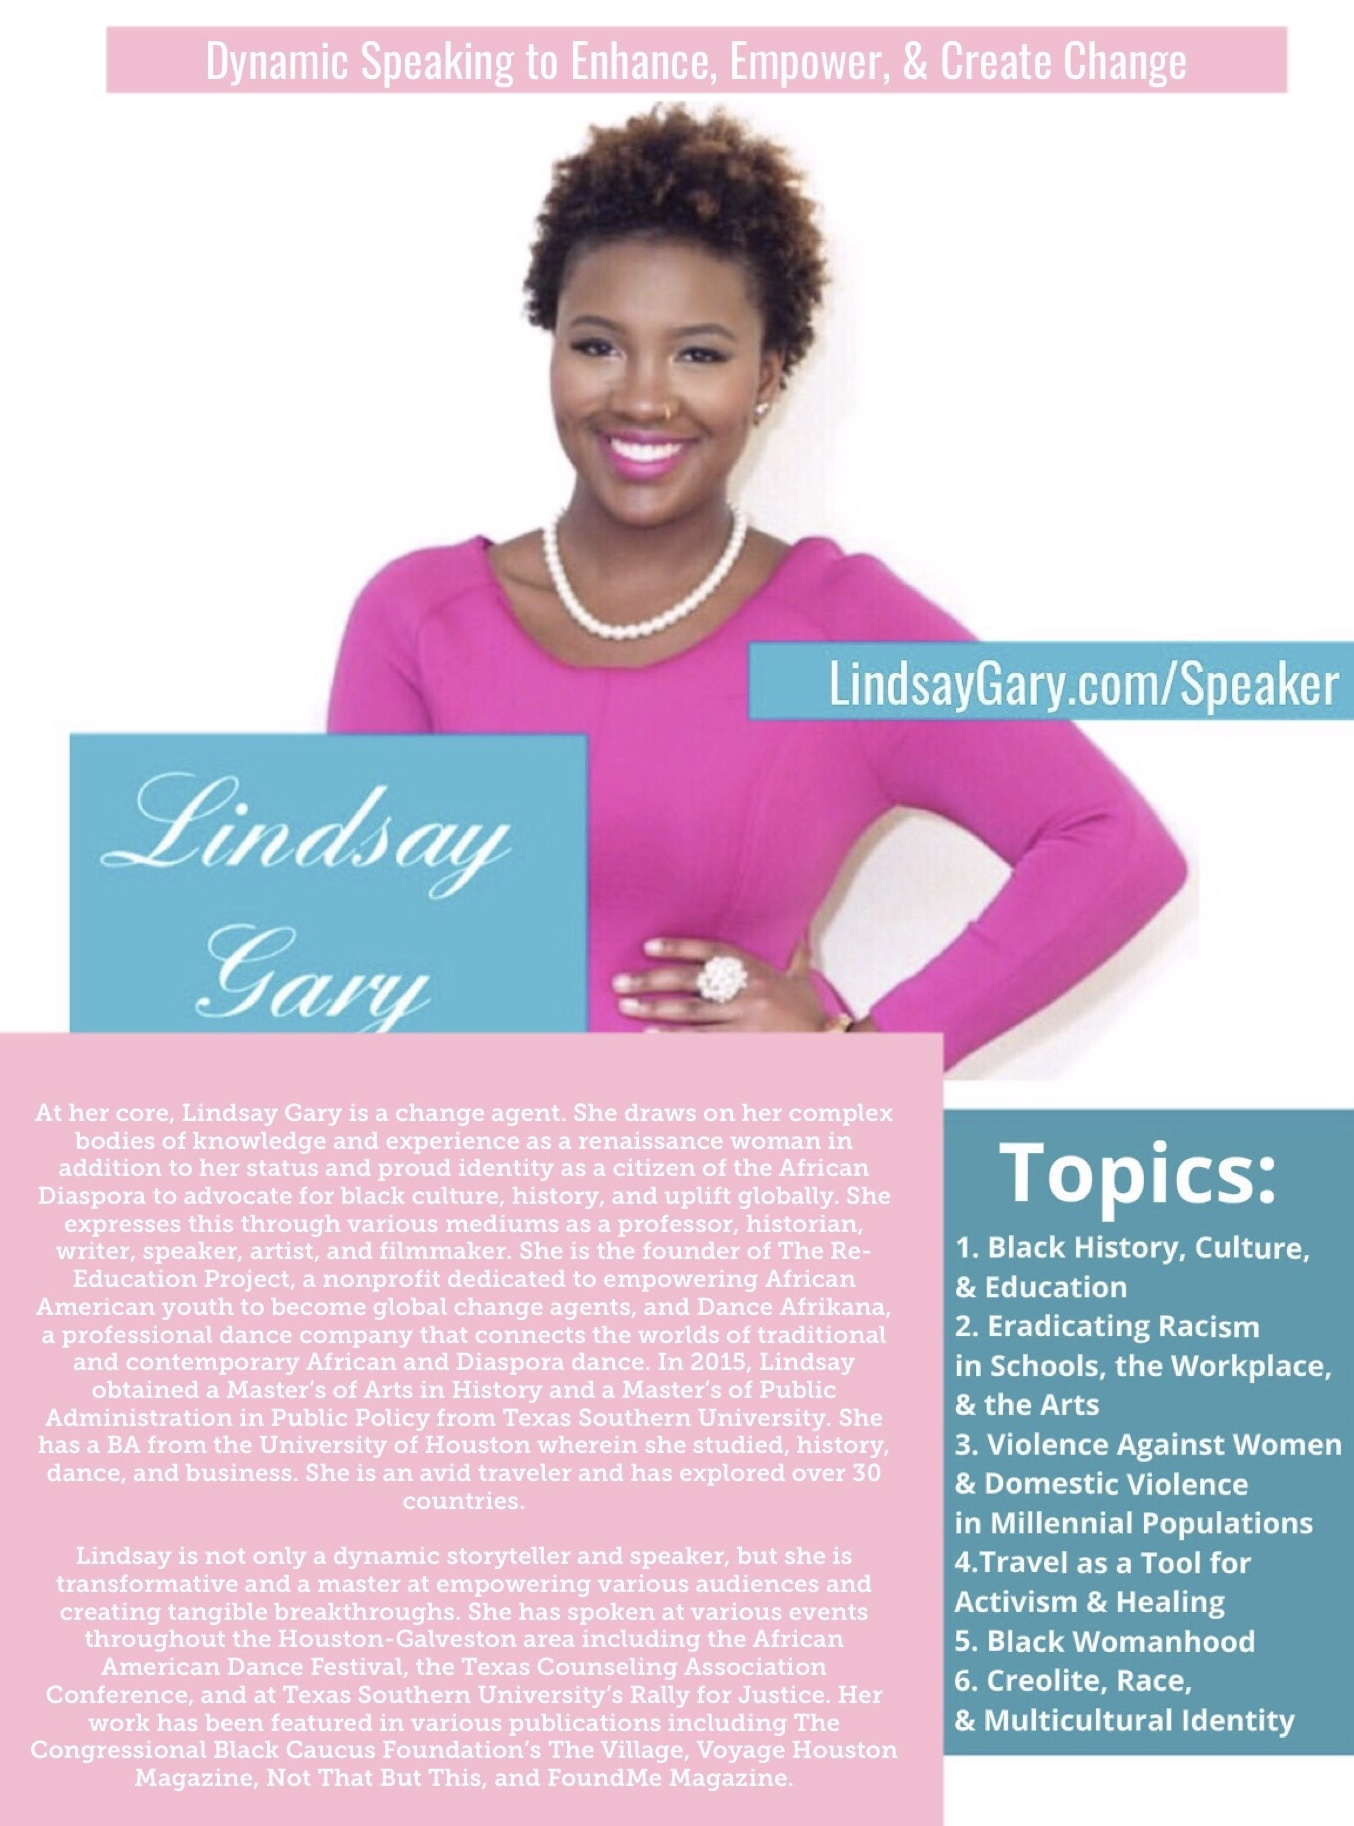 Lindsay Speaks - Lindsay is not only a dynamic storyteller and speaker, but she is transformative and a master at empowering various audiences and creating tangible breakthroughs. She has spoken at various events throughout the Houston-Galveston area. Her topics include: Black History, Culture, & Education; Eradicating Racism in Schools, the Workplace, & the Arts; Violence Against Women & Domestic Violence in Millennial Populations; Travel as a Tool for Activism & Healing; Black Womanhood; Creolite, Race, & Multicultural Identity